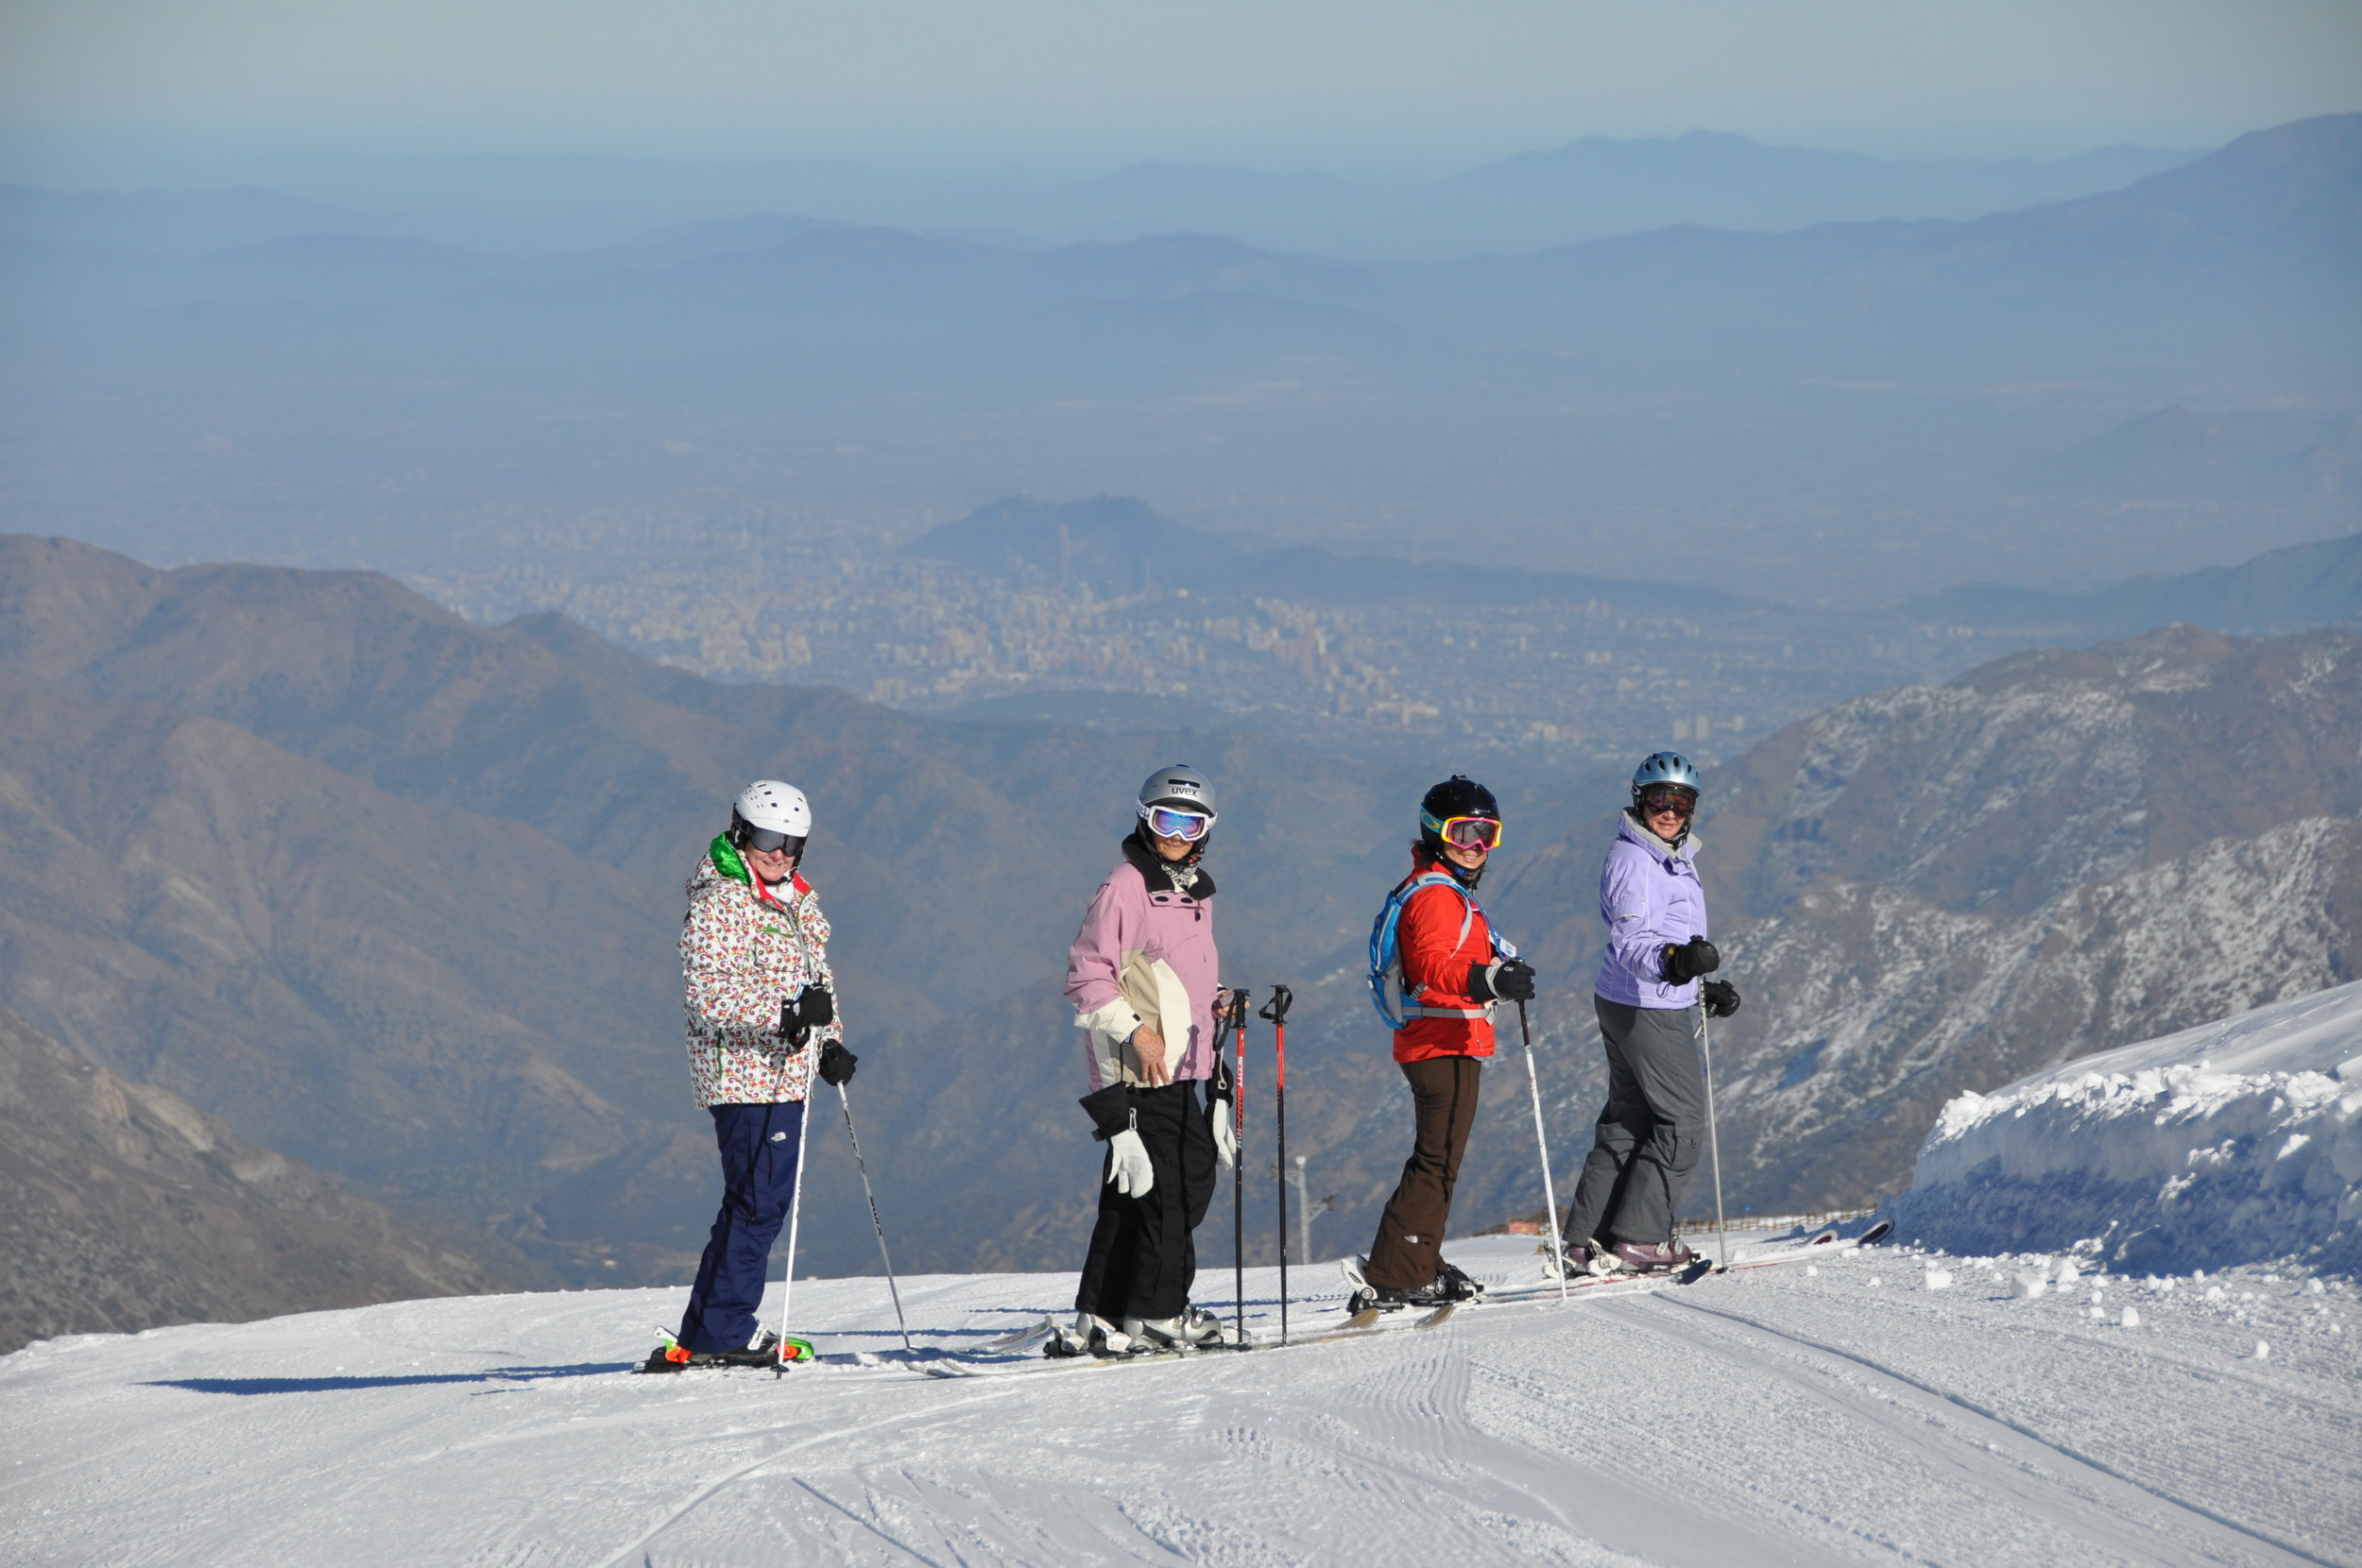 Janet and crew skiing Valle Nevado with Santiago in the background